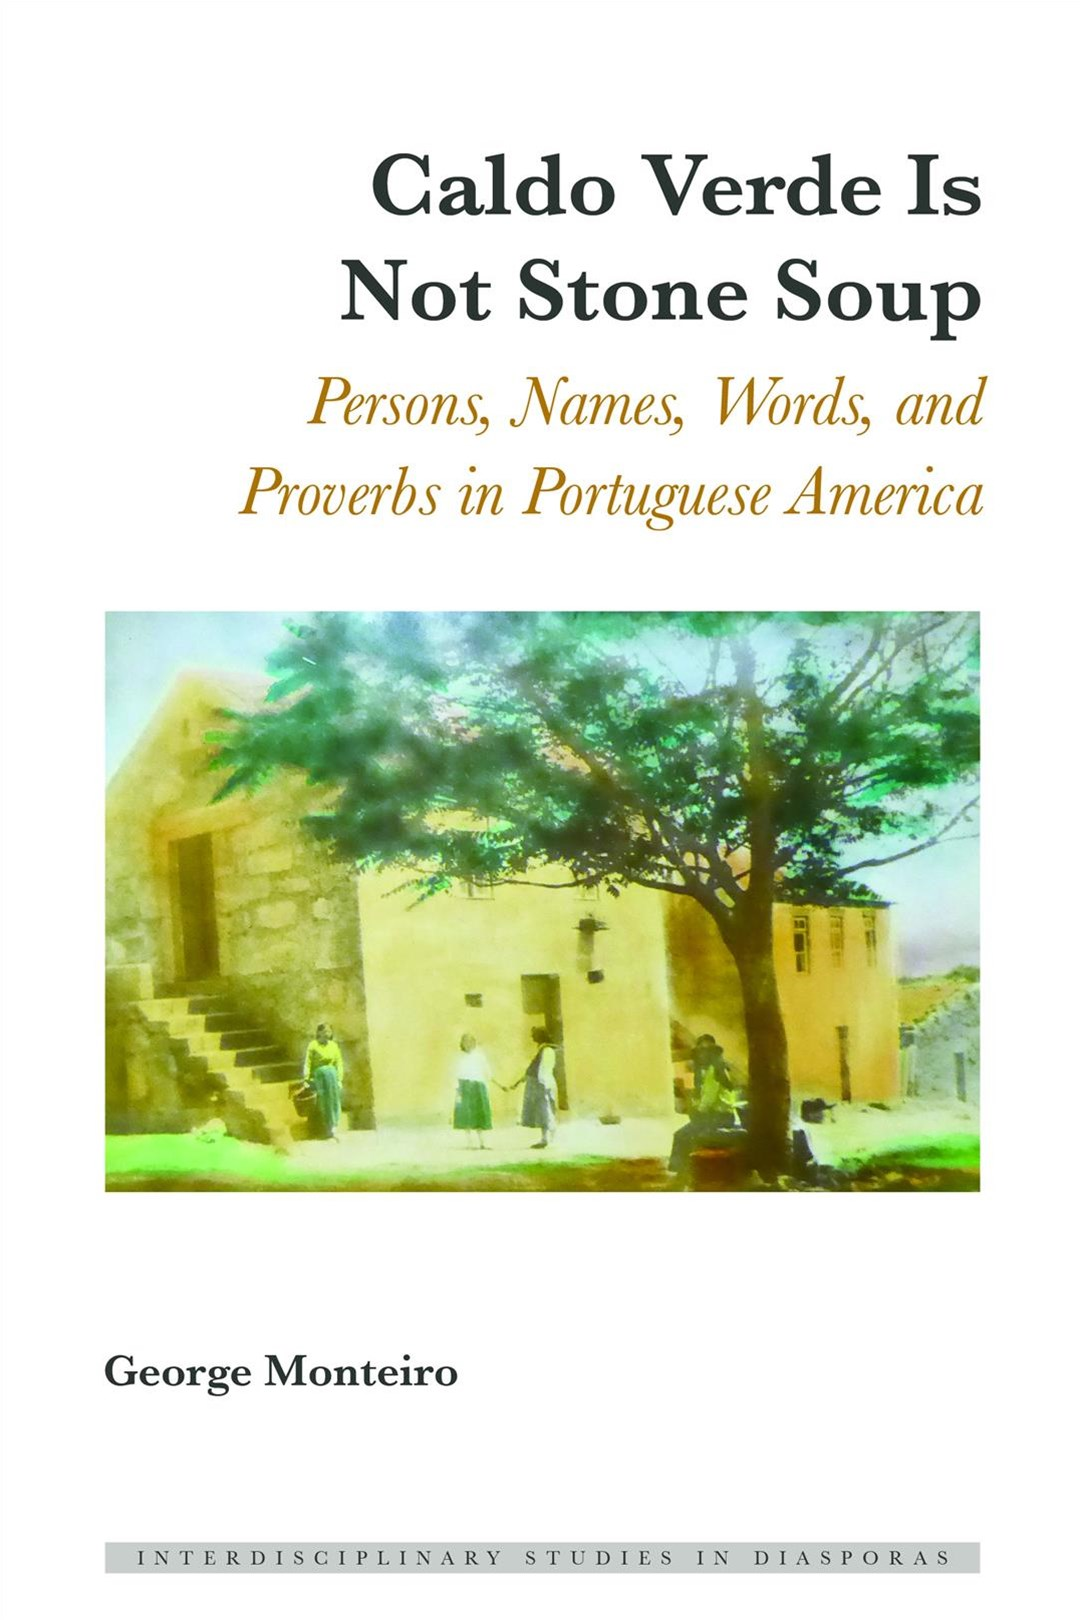 Caldo Verde Is Not Stone Soup